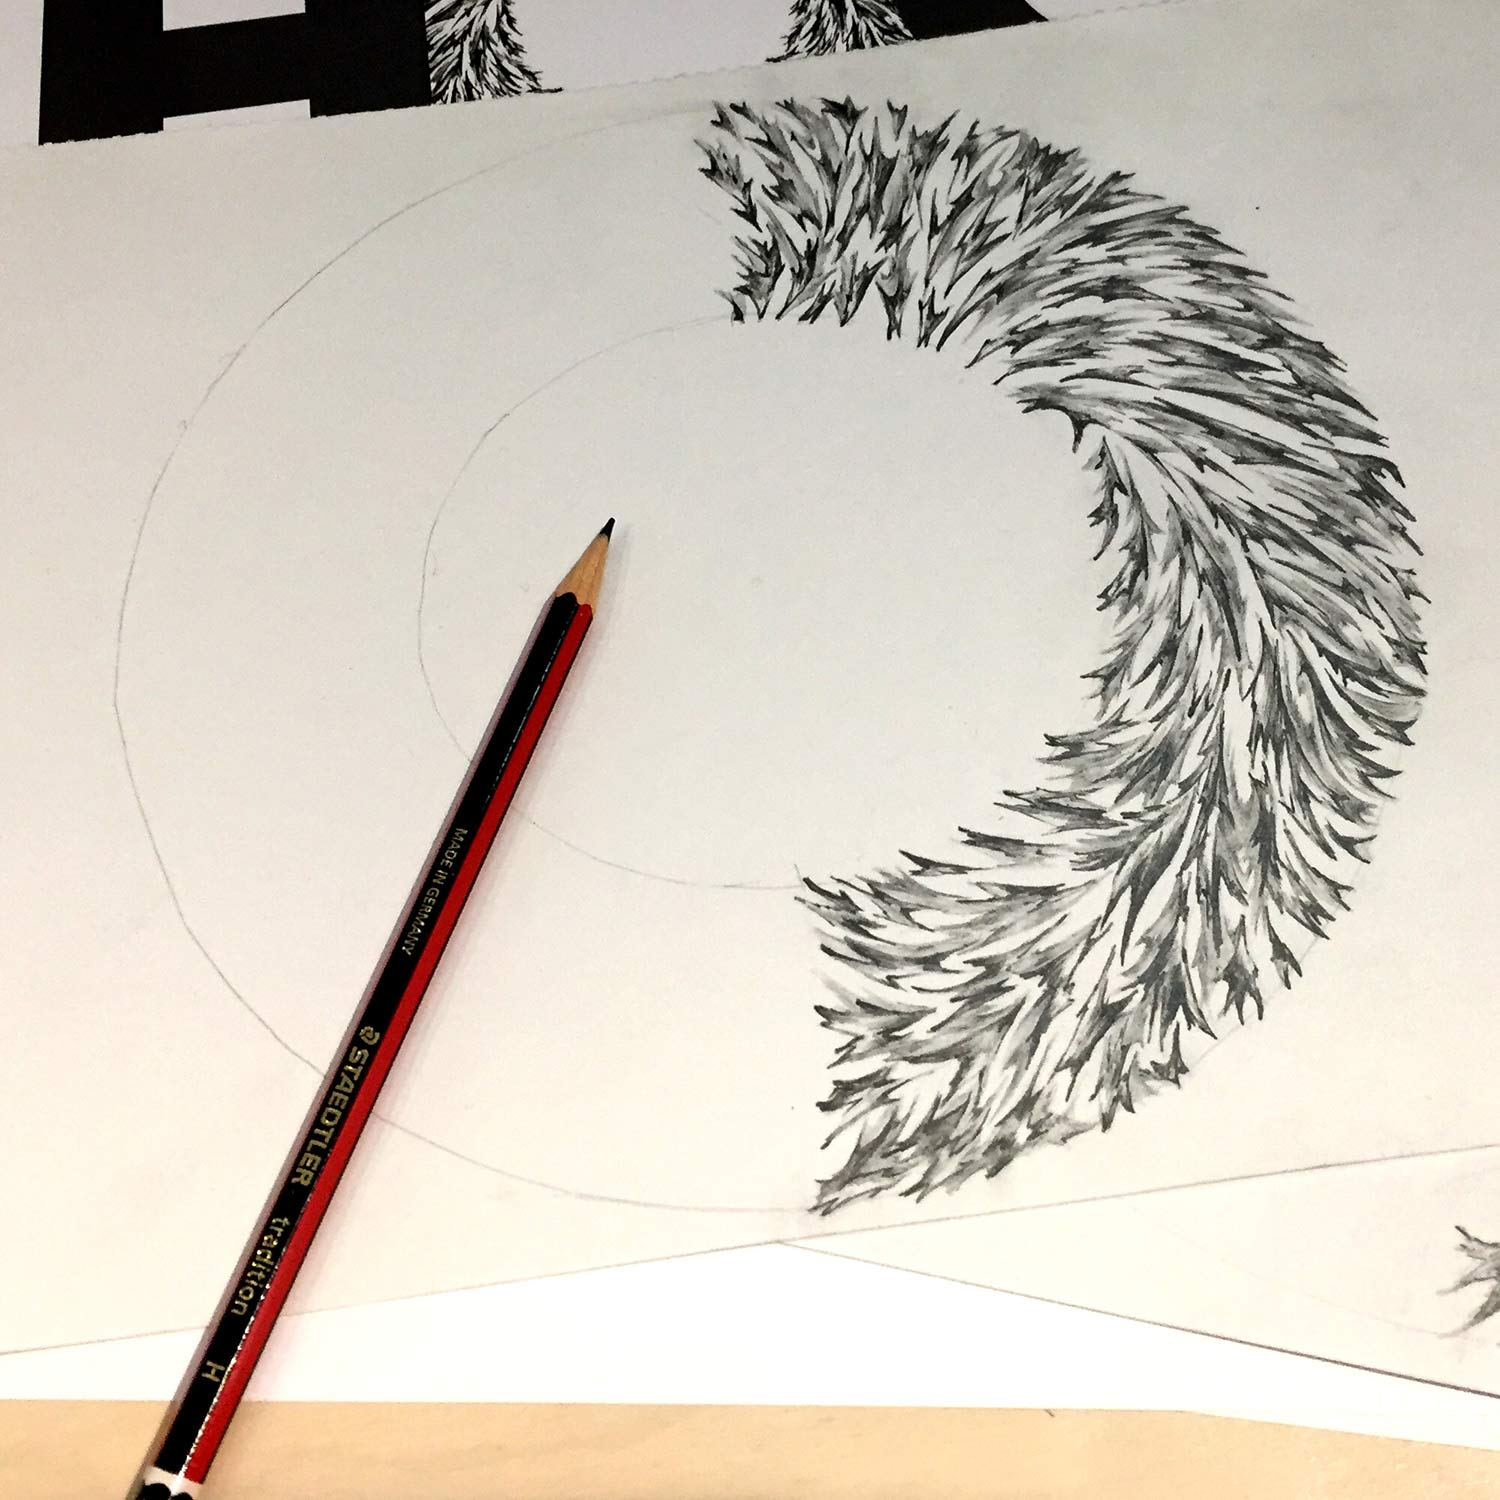 Creating The Hog logo in progress